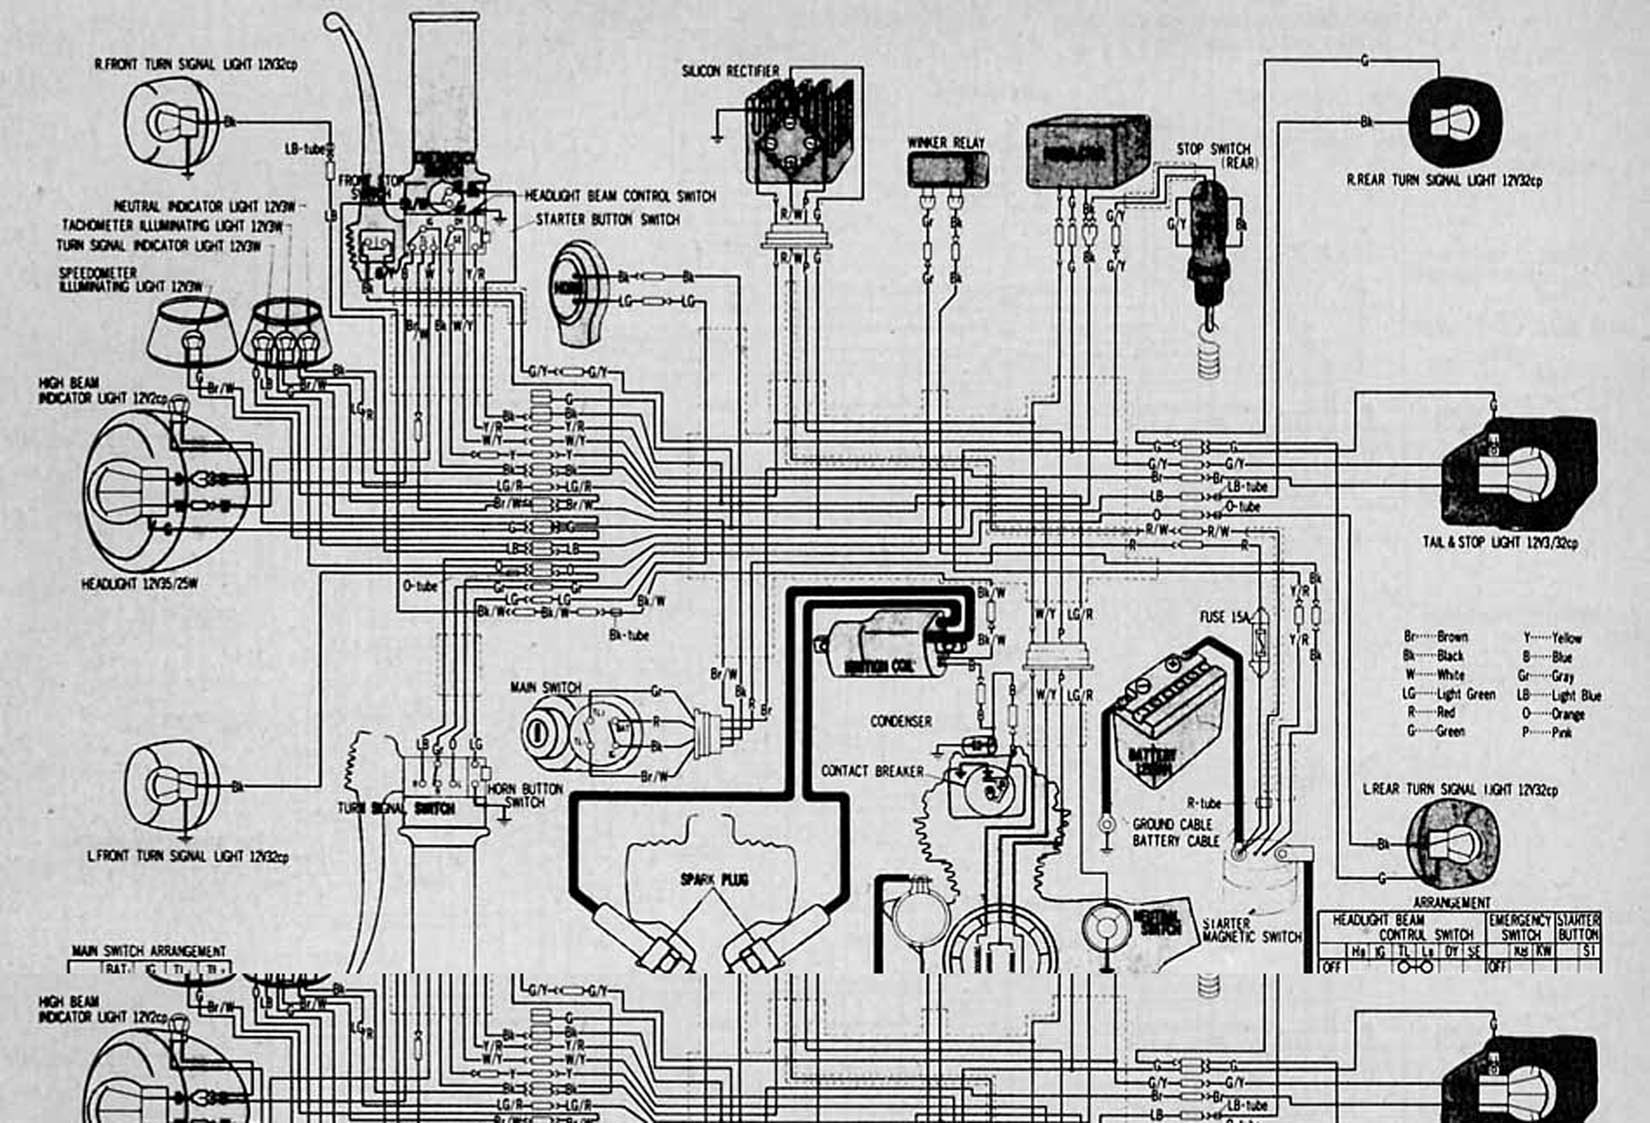 14529d1333841707 first bike cb200 honda cb cl200 electrical wiring diagram cb360 wiring diagram honda cl 350 wiring \u2022 wiring diagrams j 1974 honda cb360 wiring diagram at reclaimingppi.co